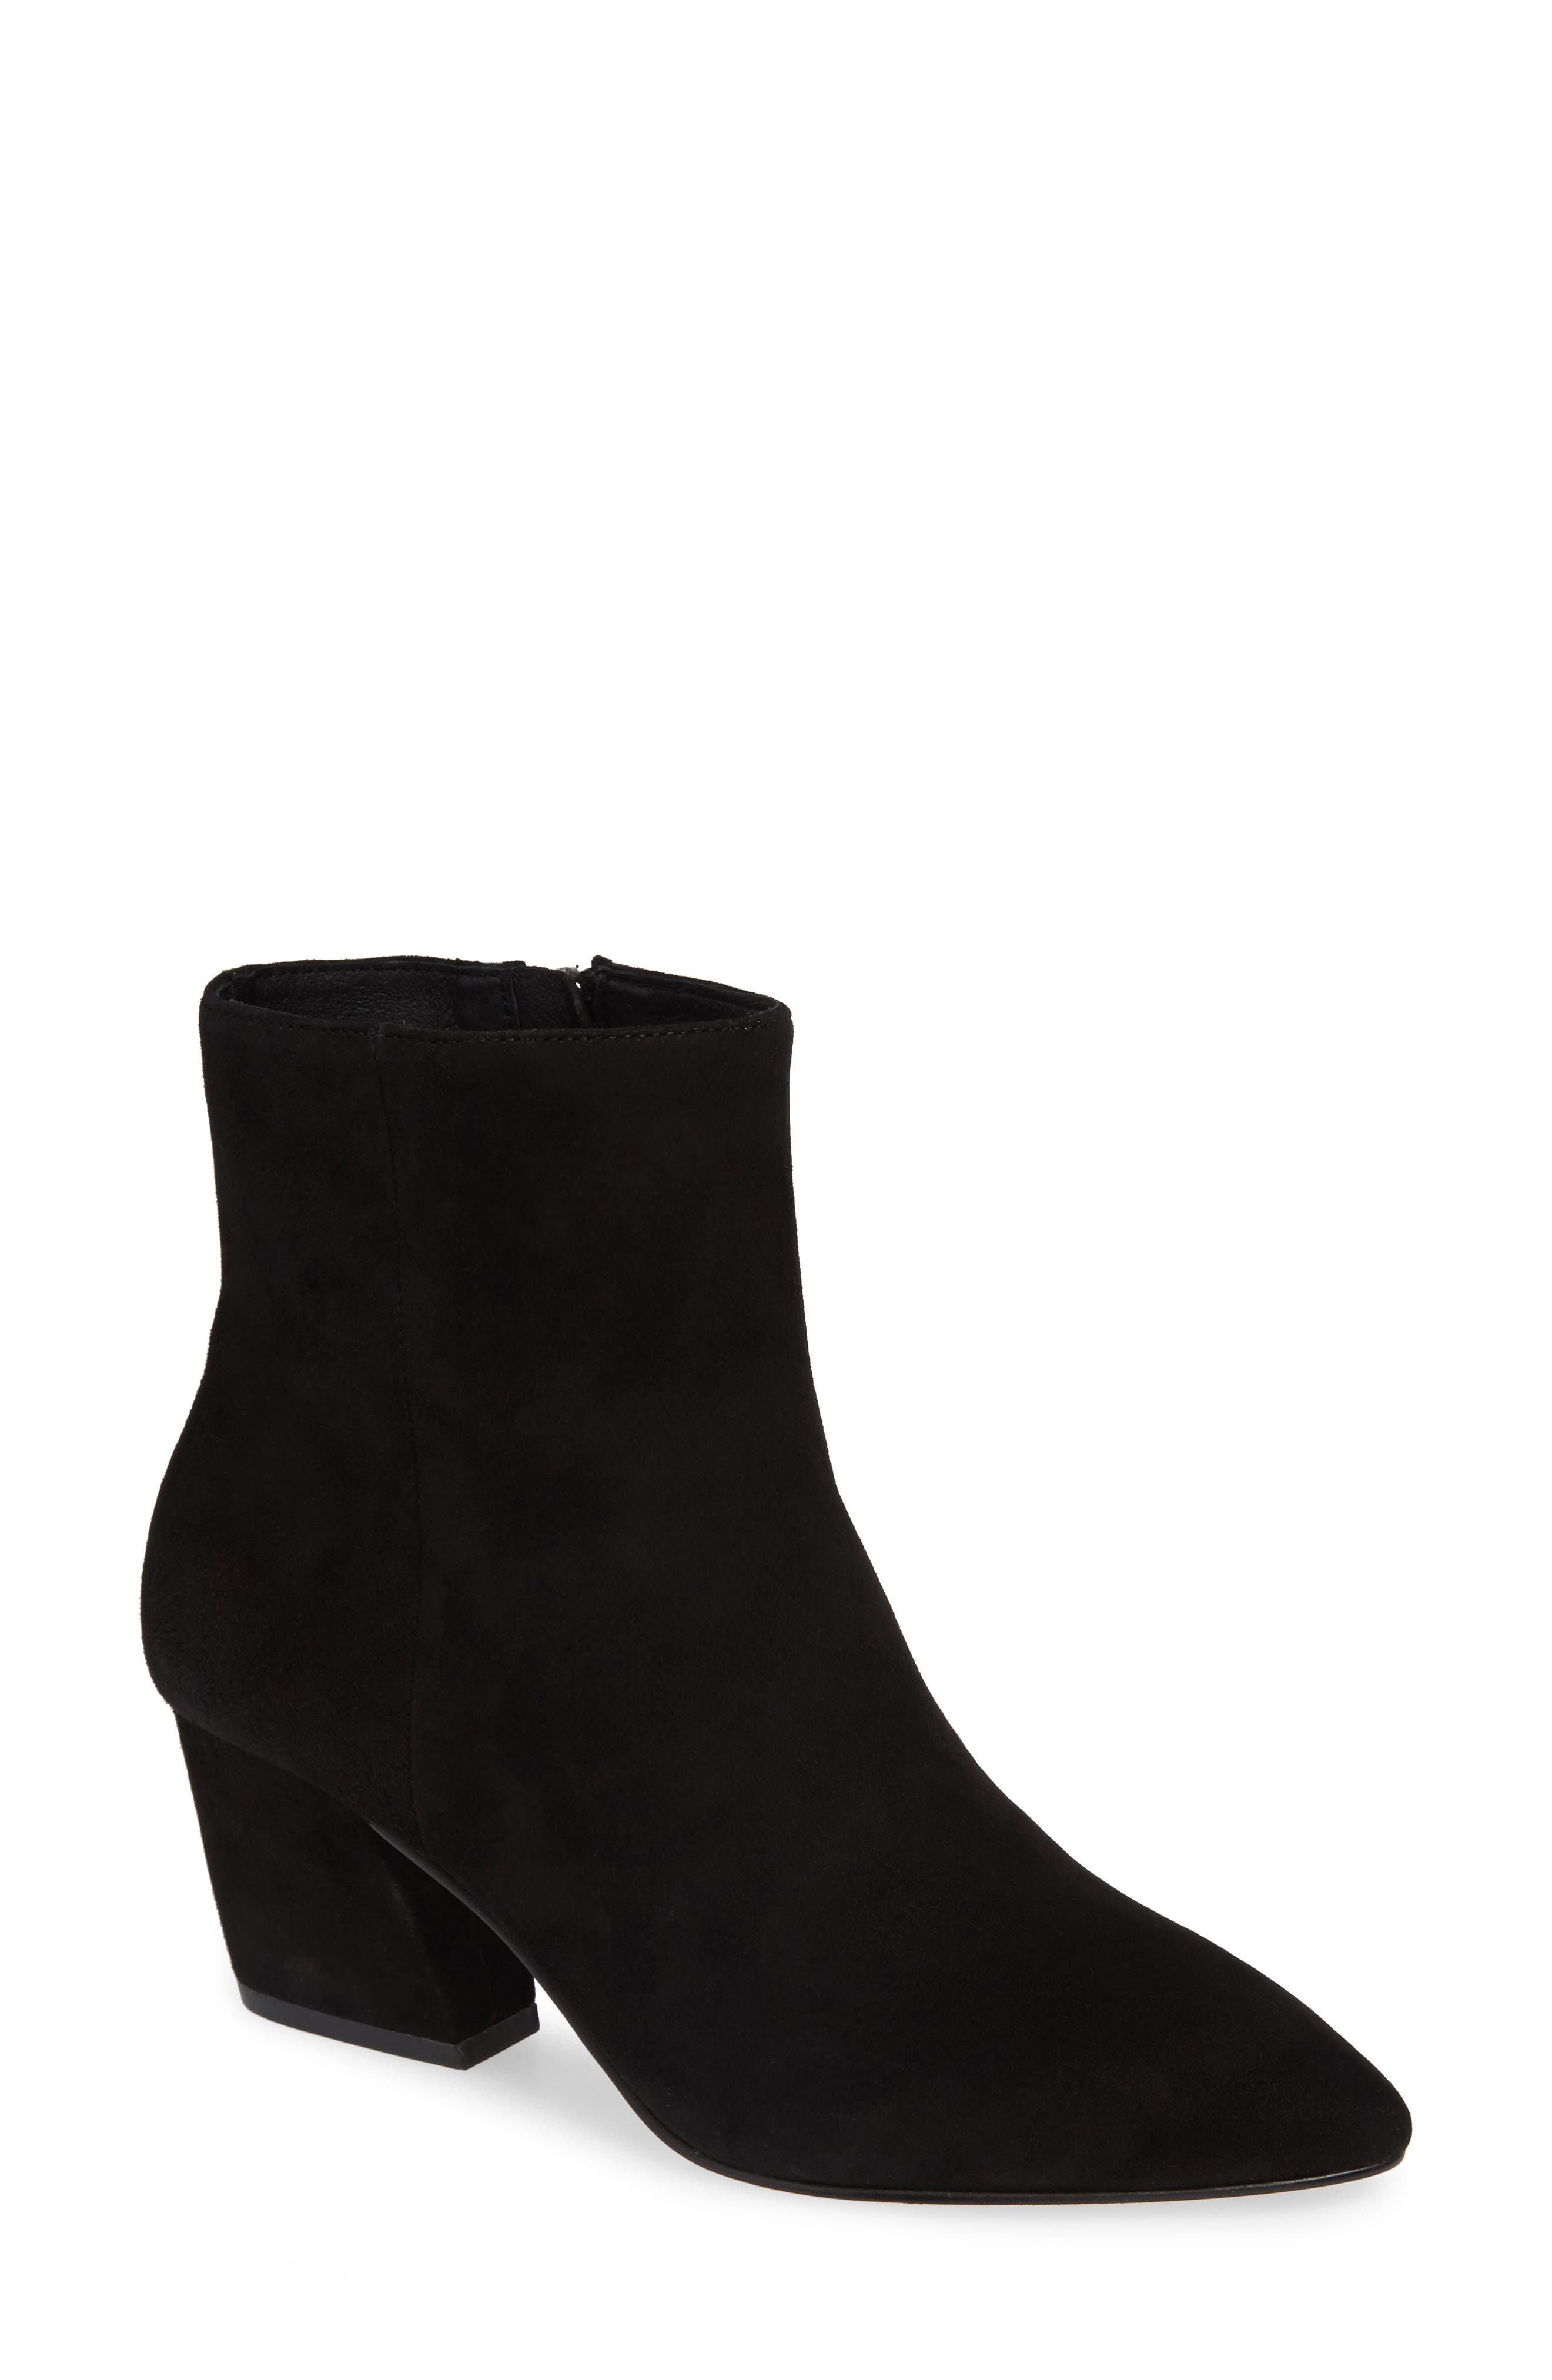 Sasha Bootie,                             Main thumbnail 1, color,                             BLACK SUEDE